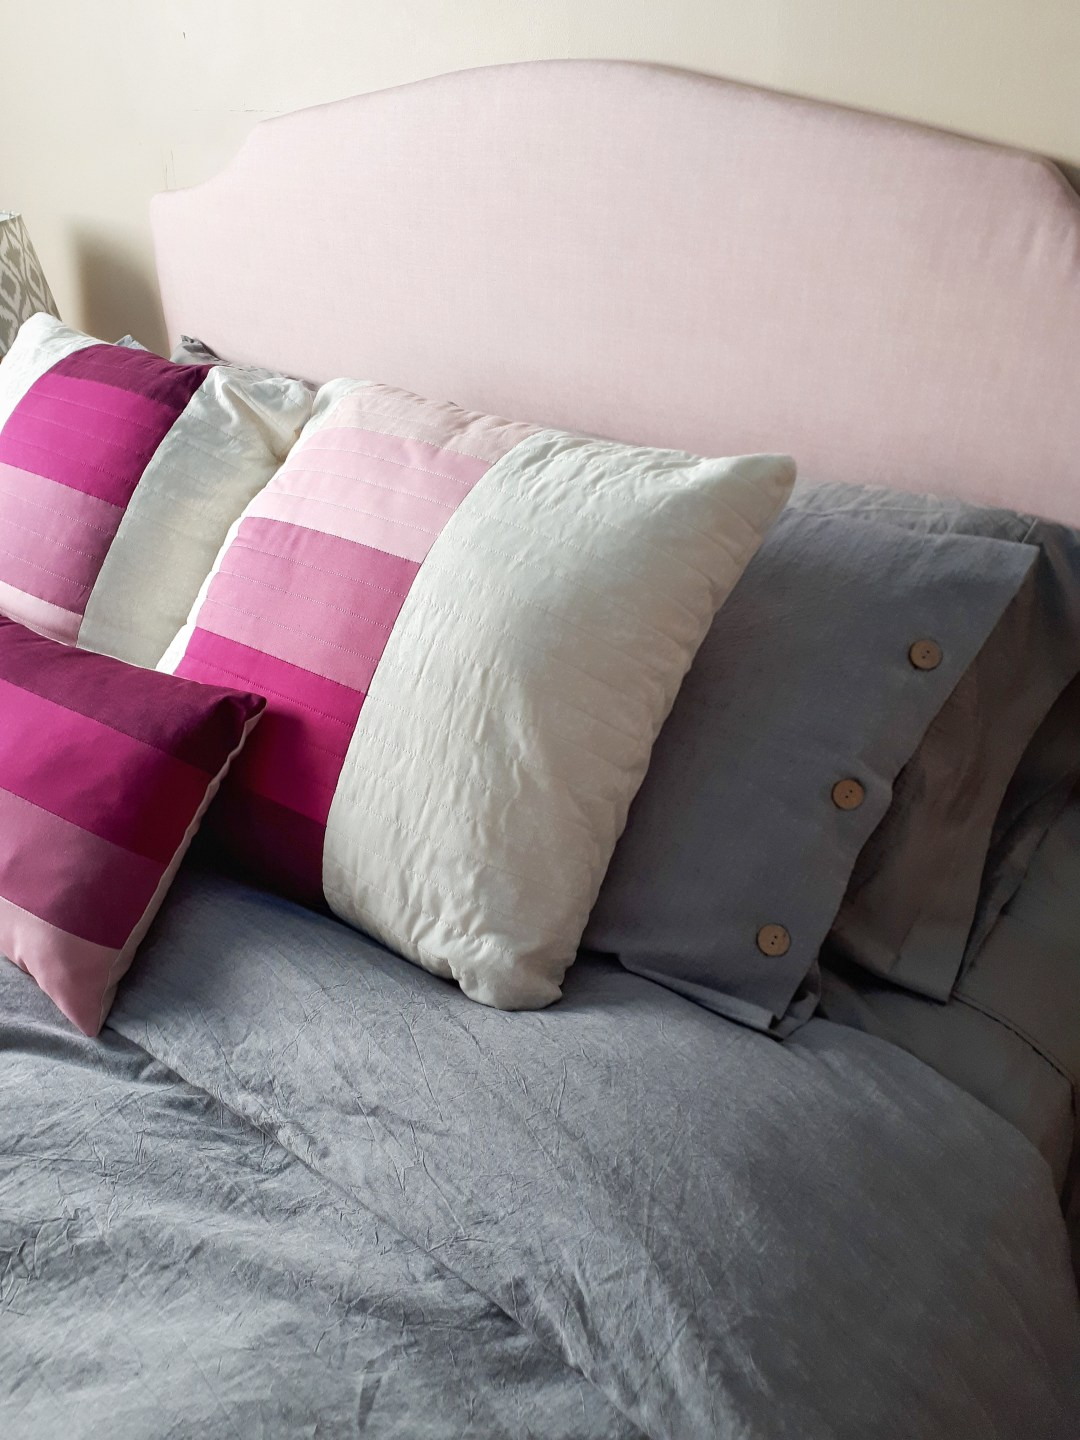 Beautiful new duvet cover and throw cushions for my DIY bedroom update on a budget!